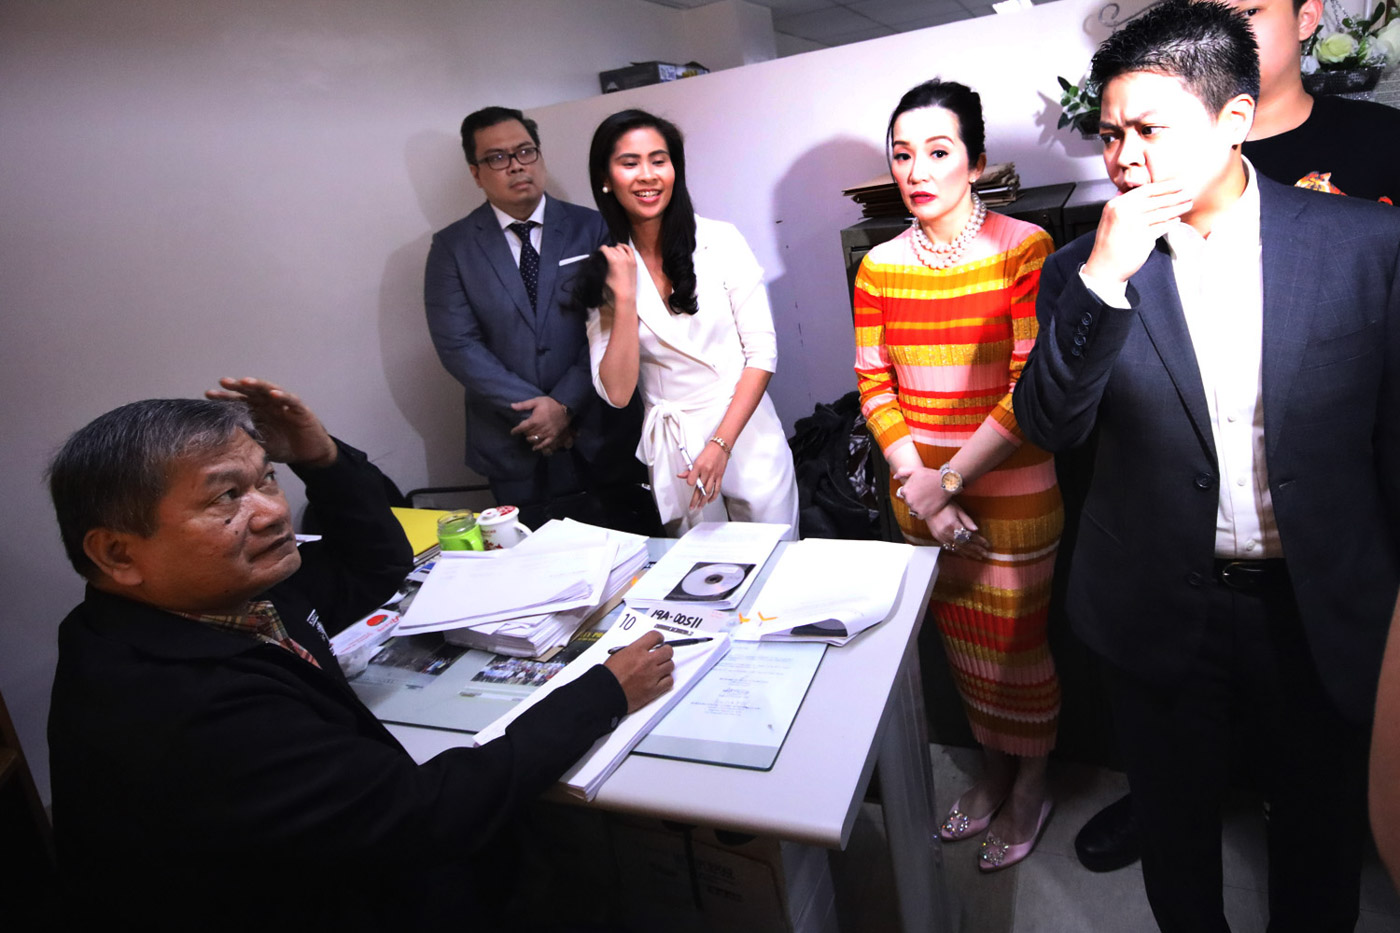 DISMISSED. Actress Kris Aquino files a counter-affidavit for the grave threats case filed against her by brothers Nikko and Jesus Falcis. File photo by Darren Langit/Rappler